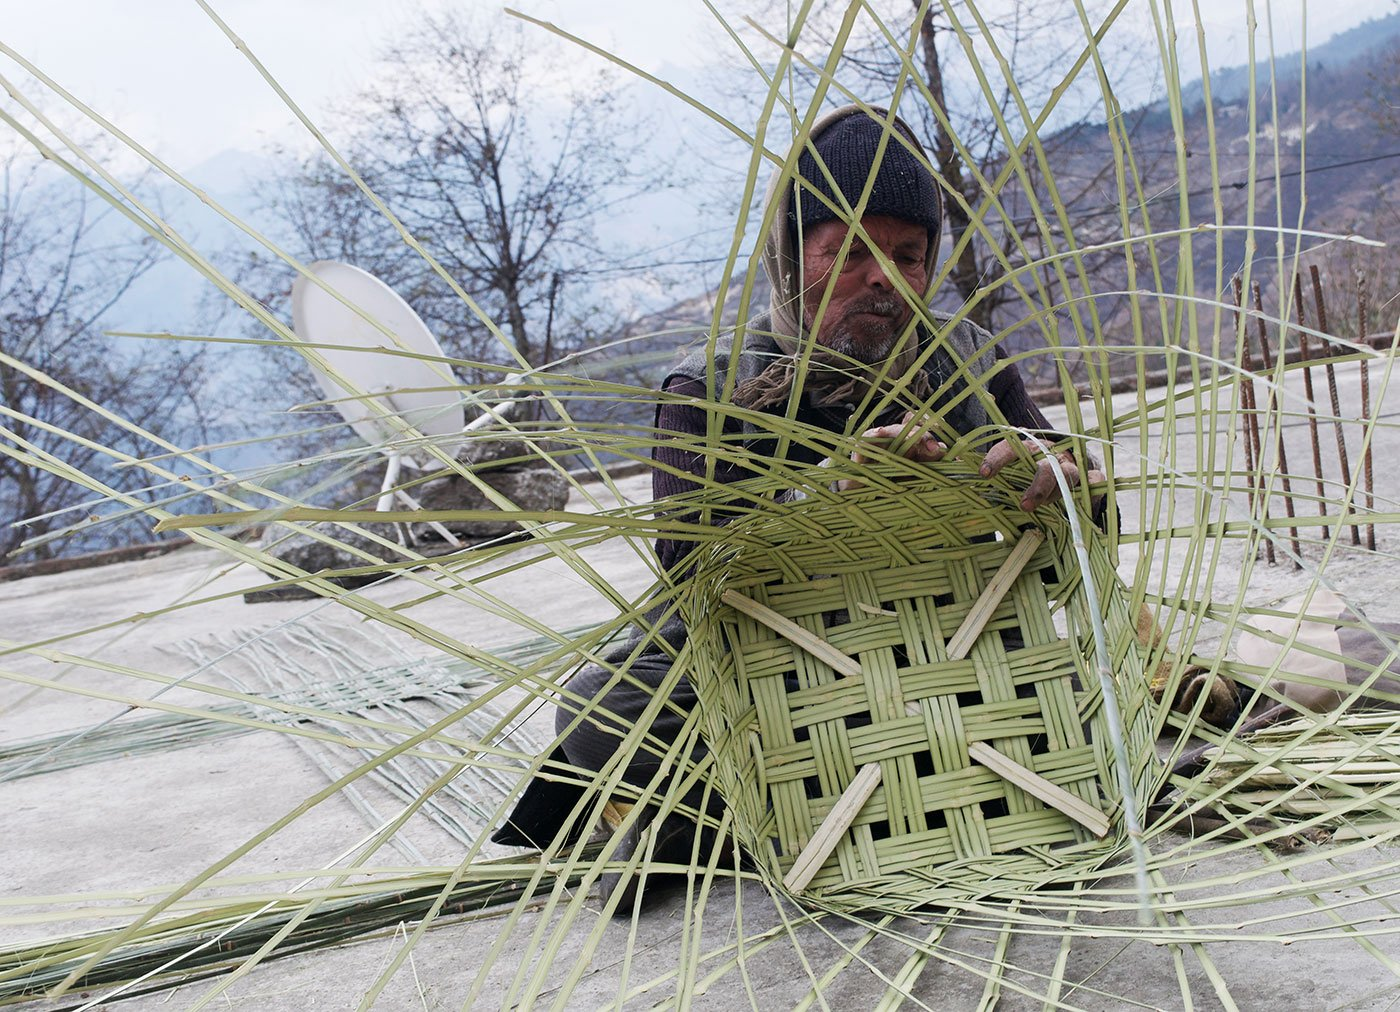 A man sitting on a terrace of a house and weaving bamboo strips into a cylindrical shape